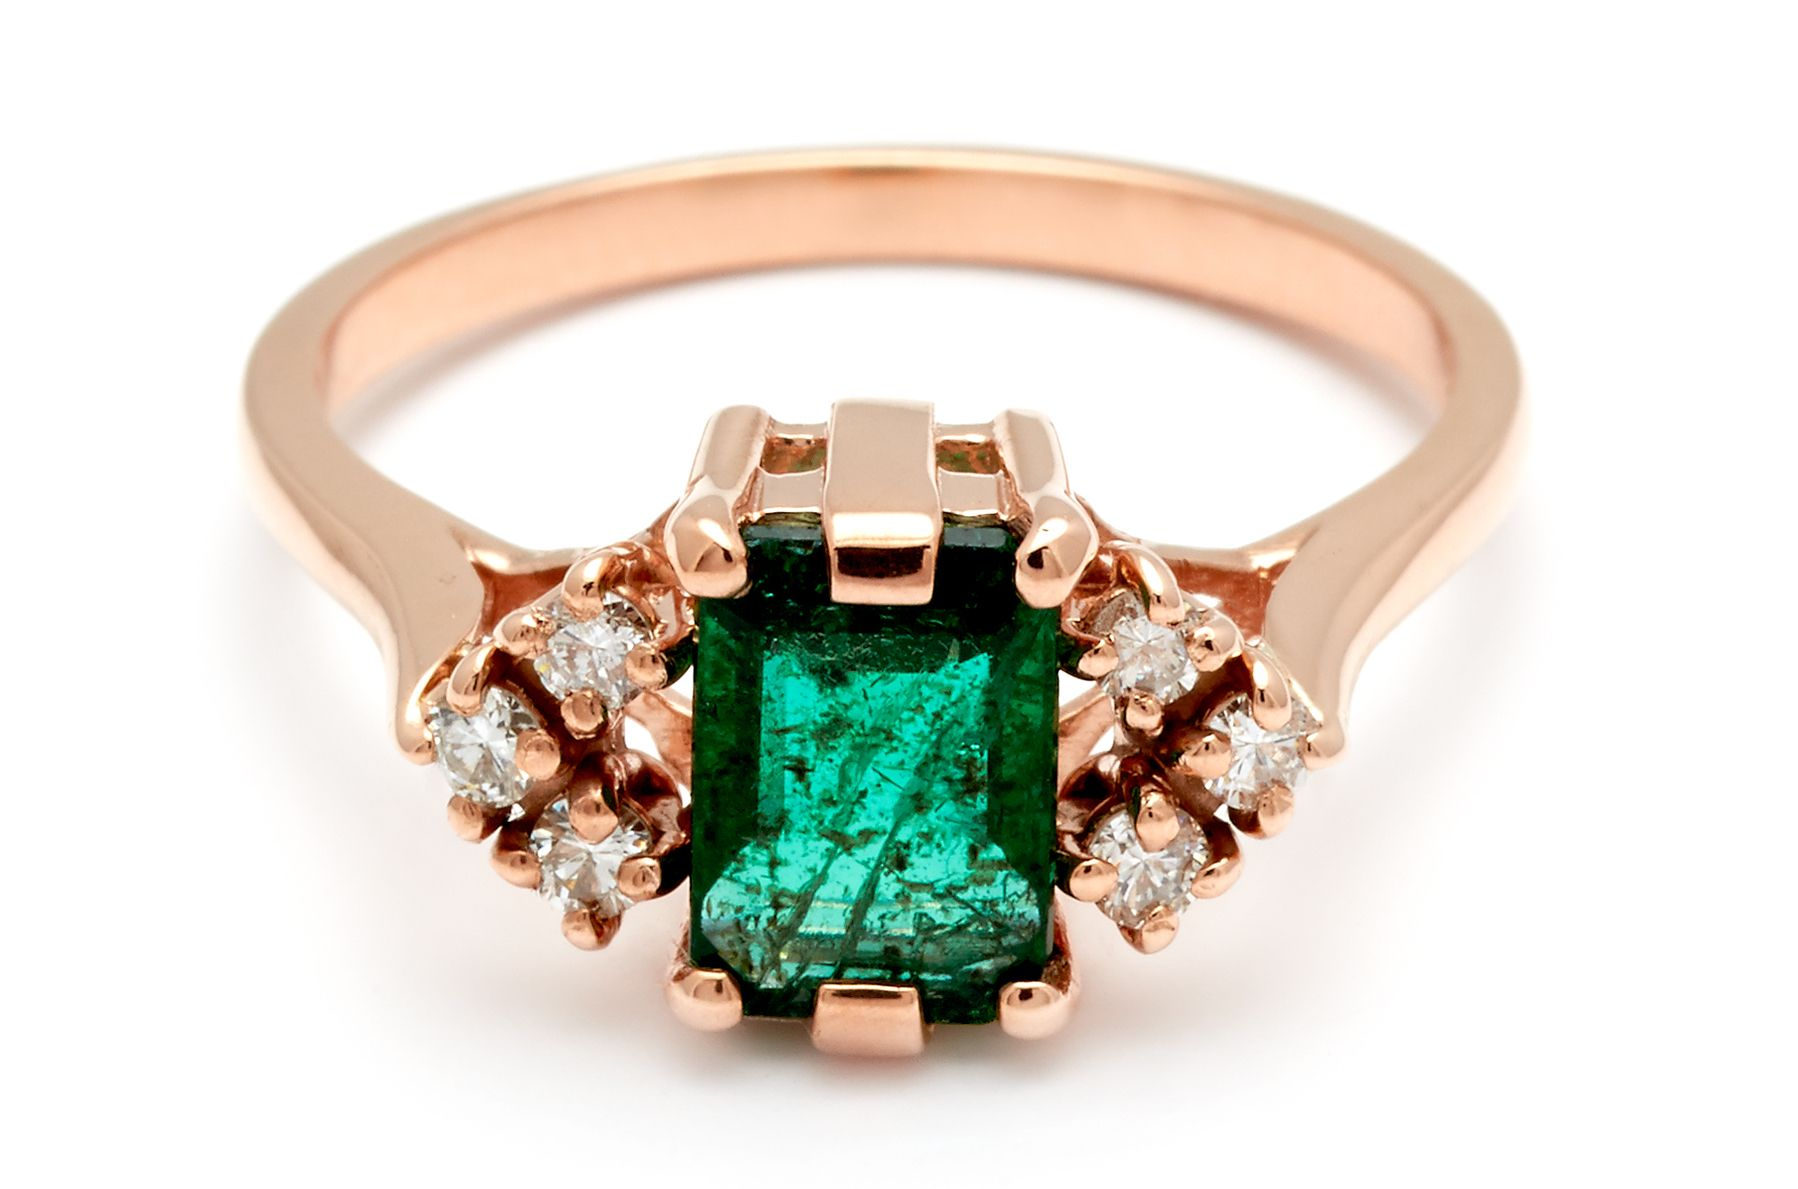 lord gold rings wedding ring of pave rose emerald engagement products shape gem cut diamond